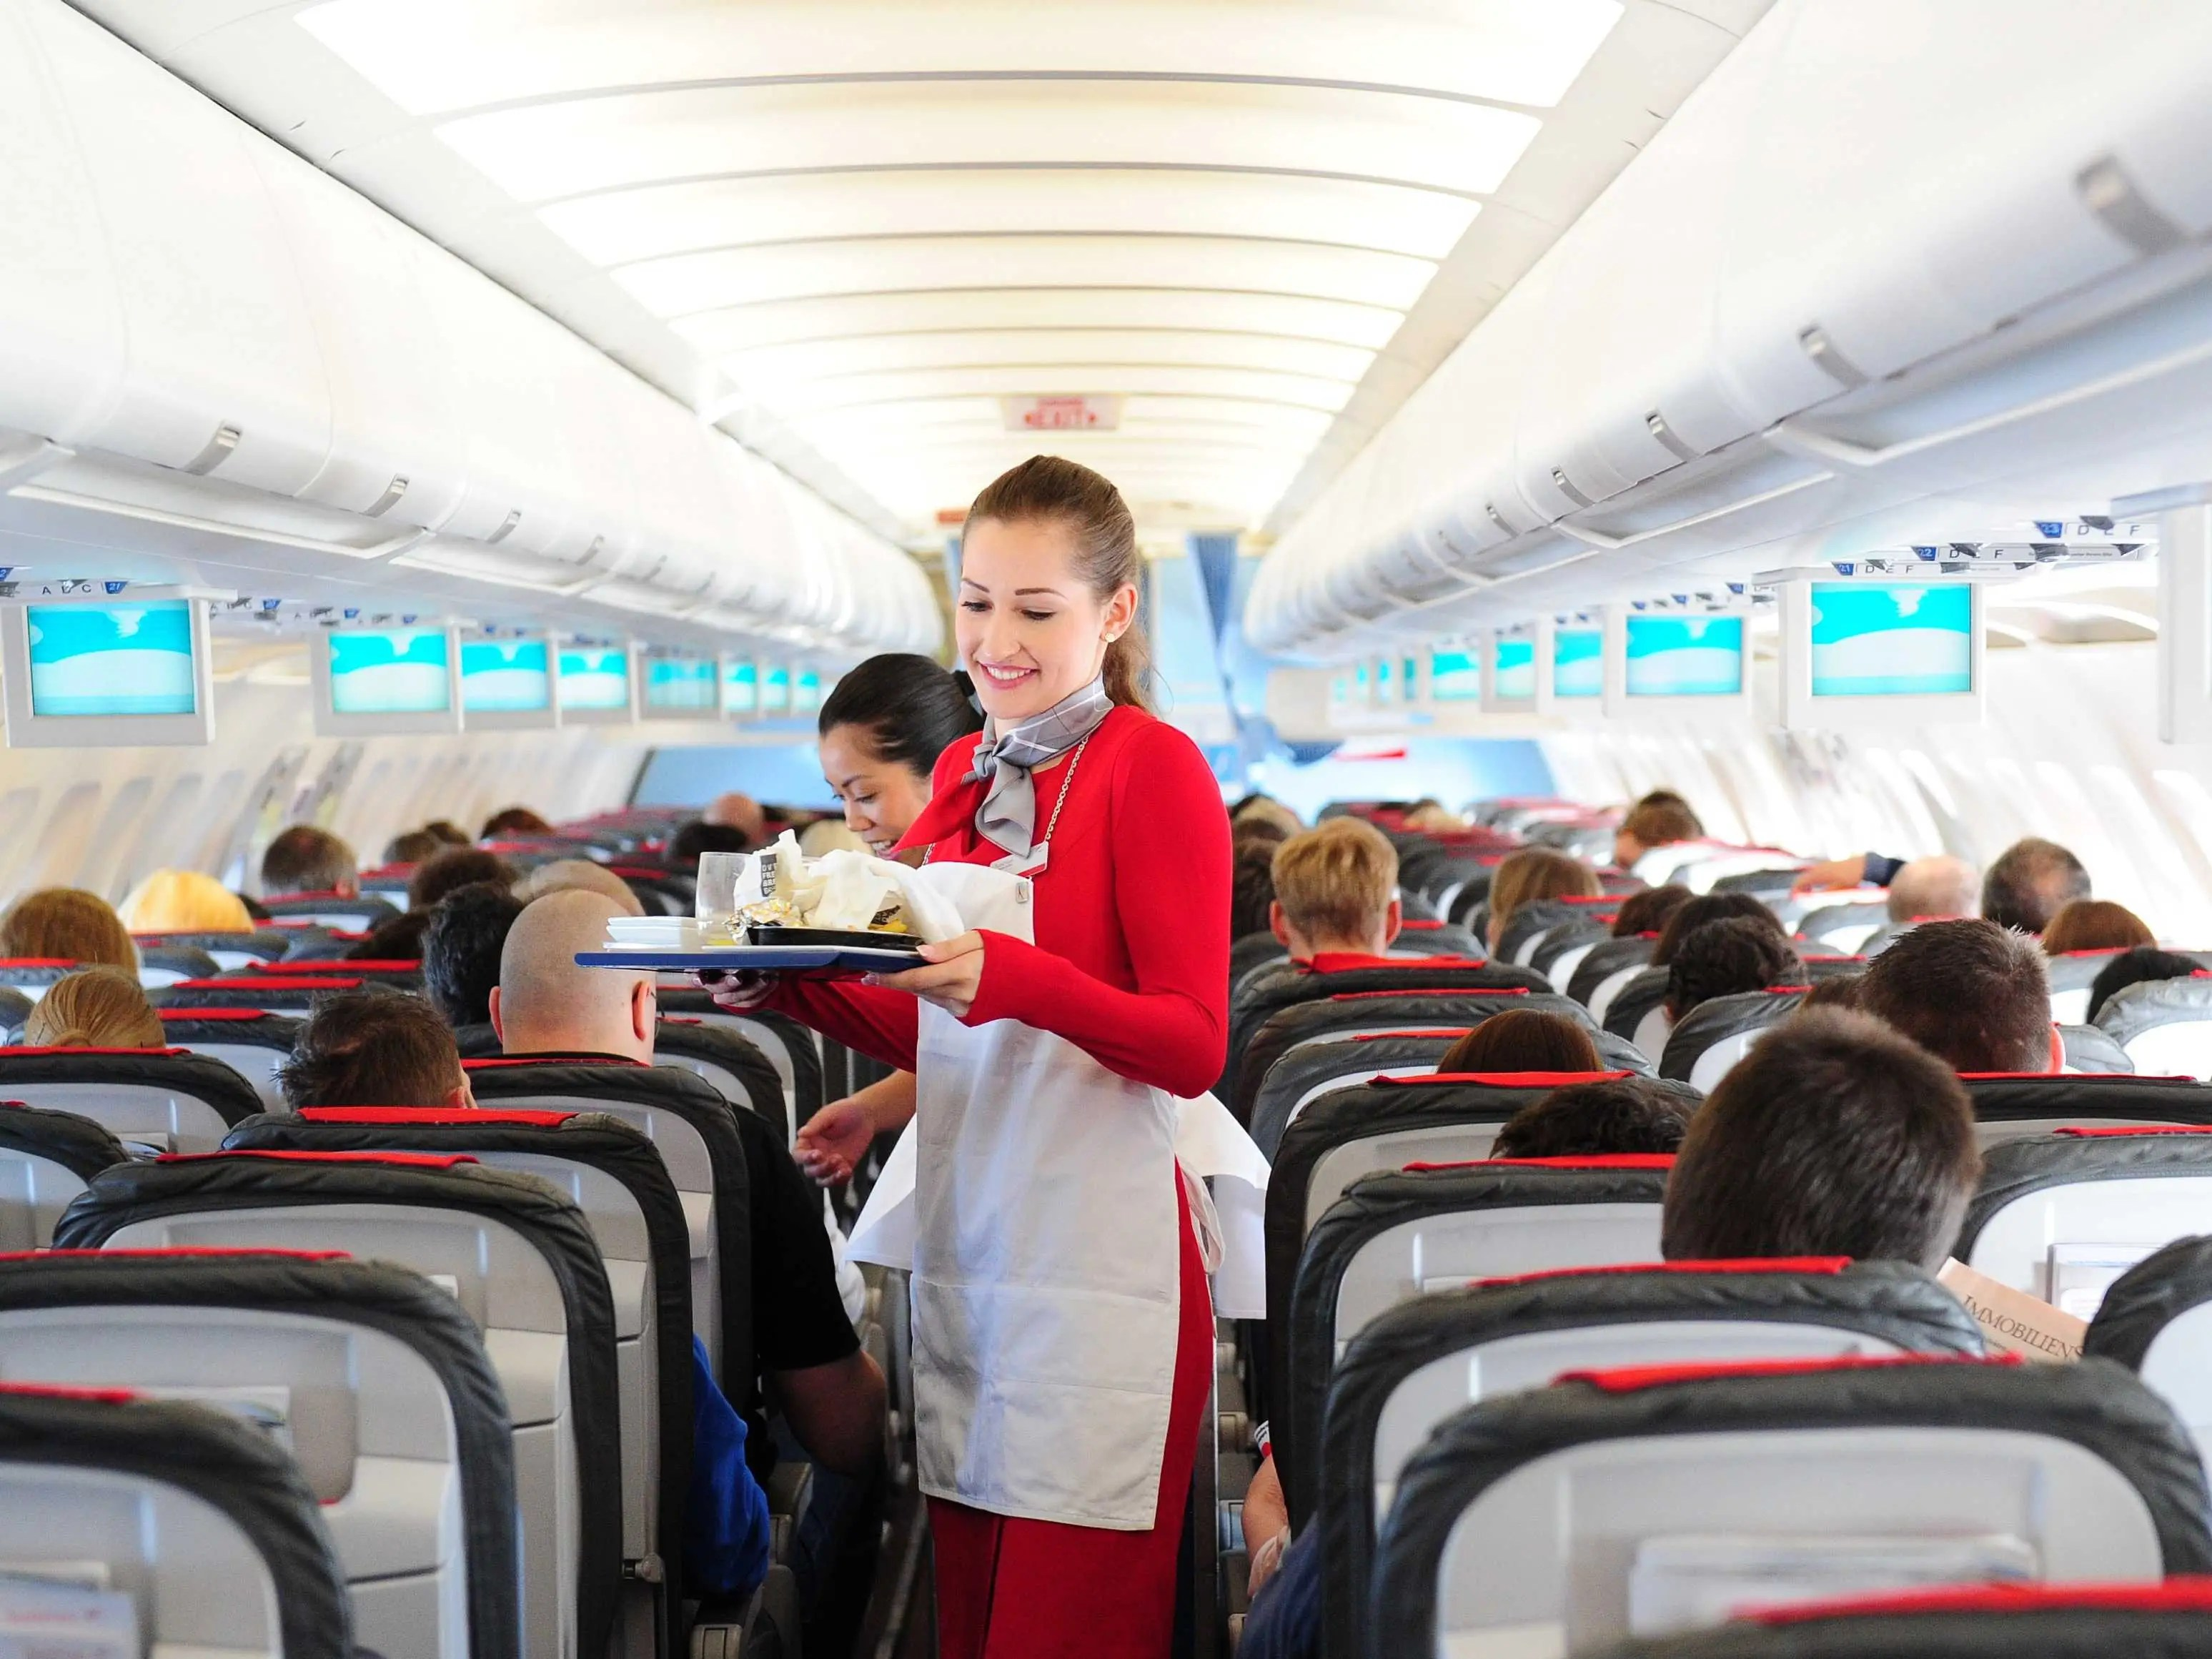 20. Austrian Airlines